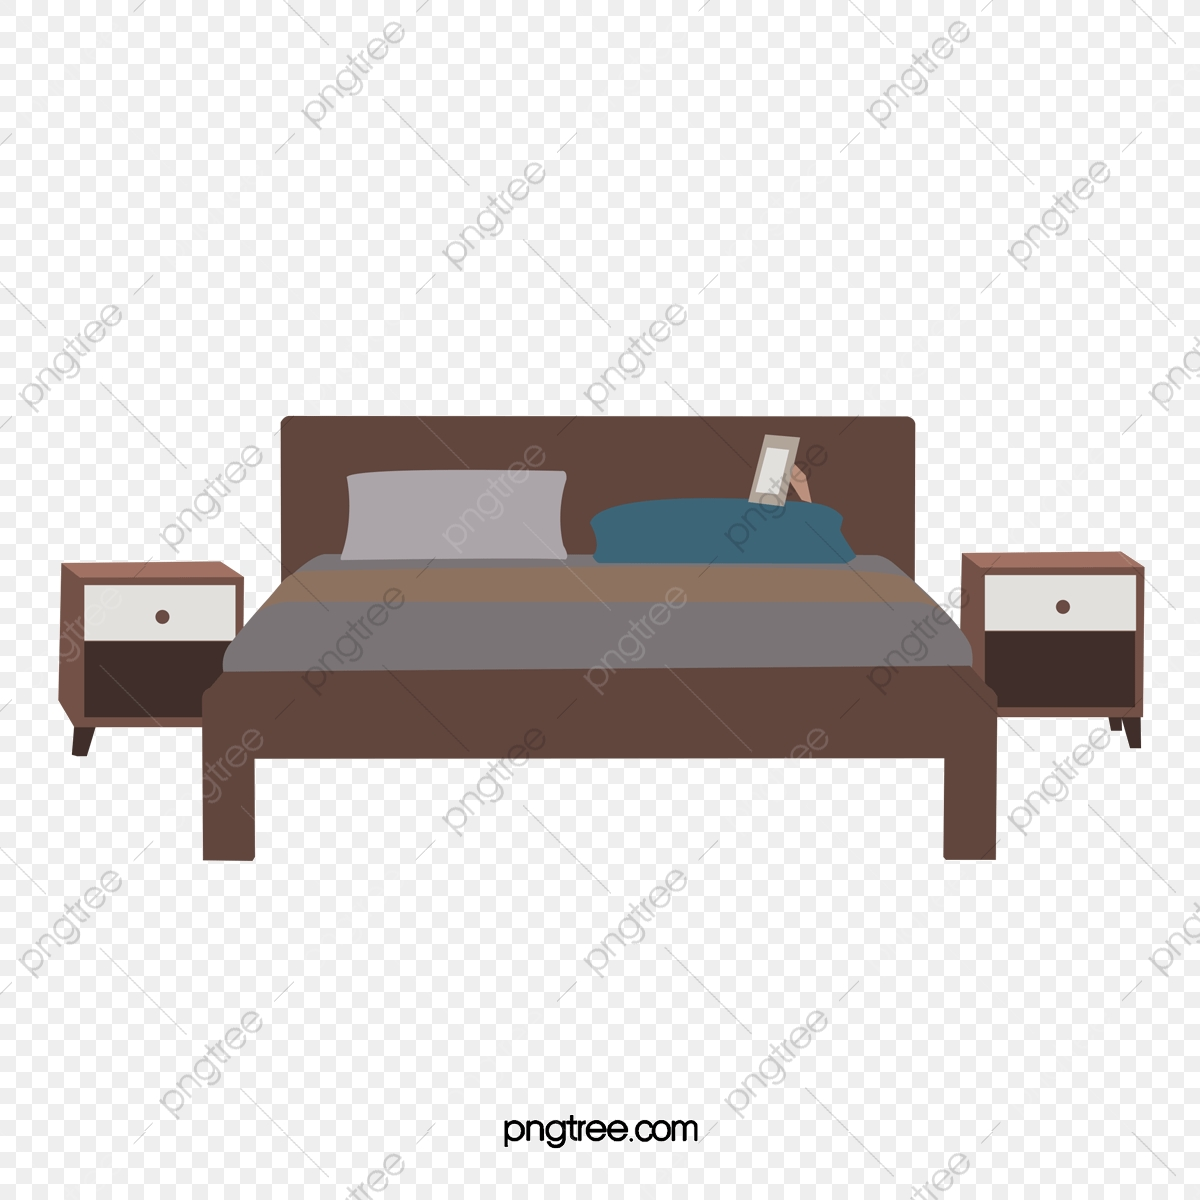 Bed clipart simple. White double bedside